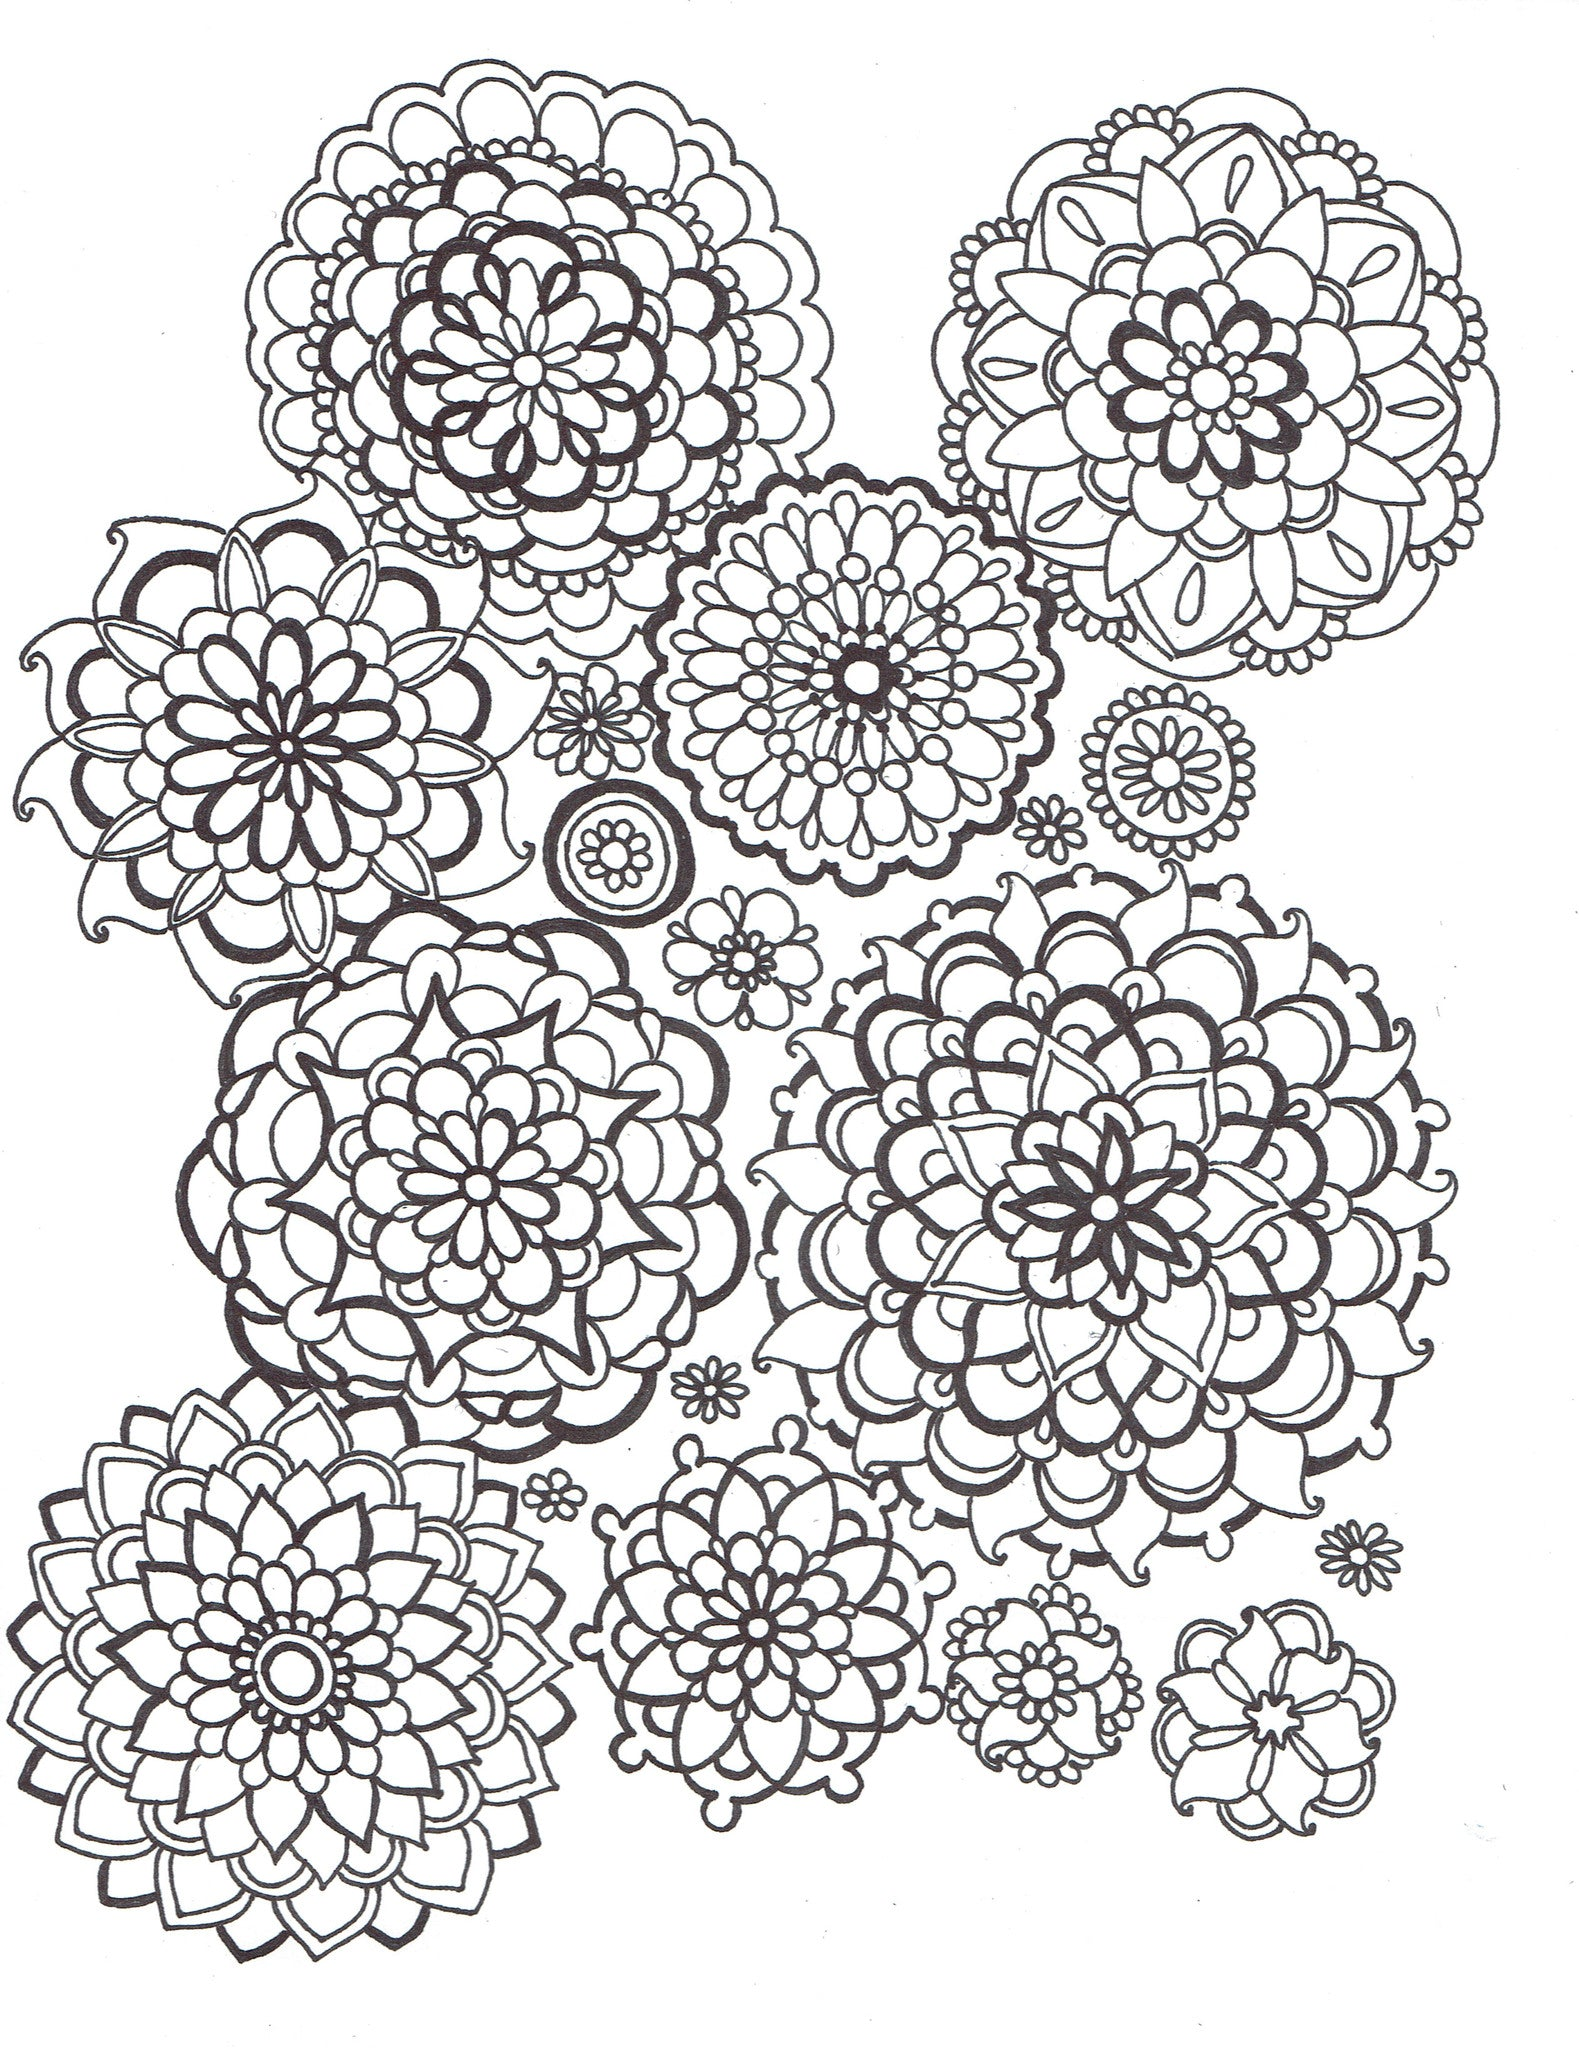 More mandalas! - You-Color